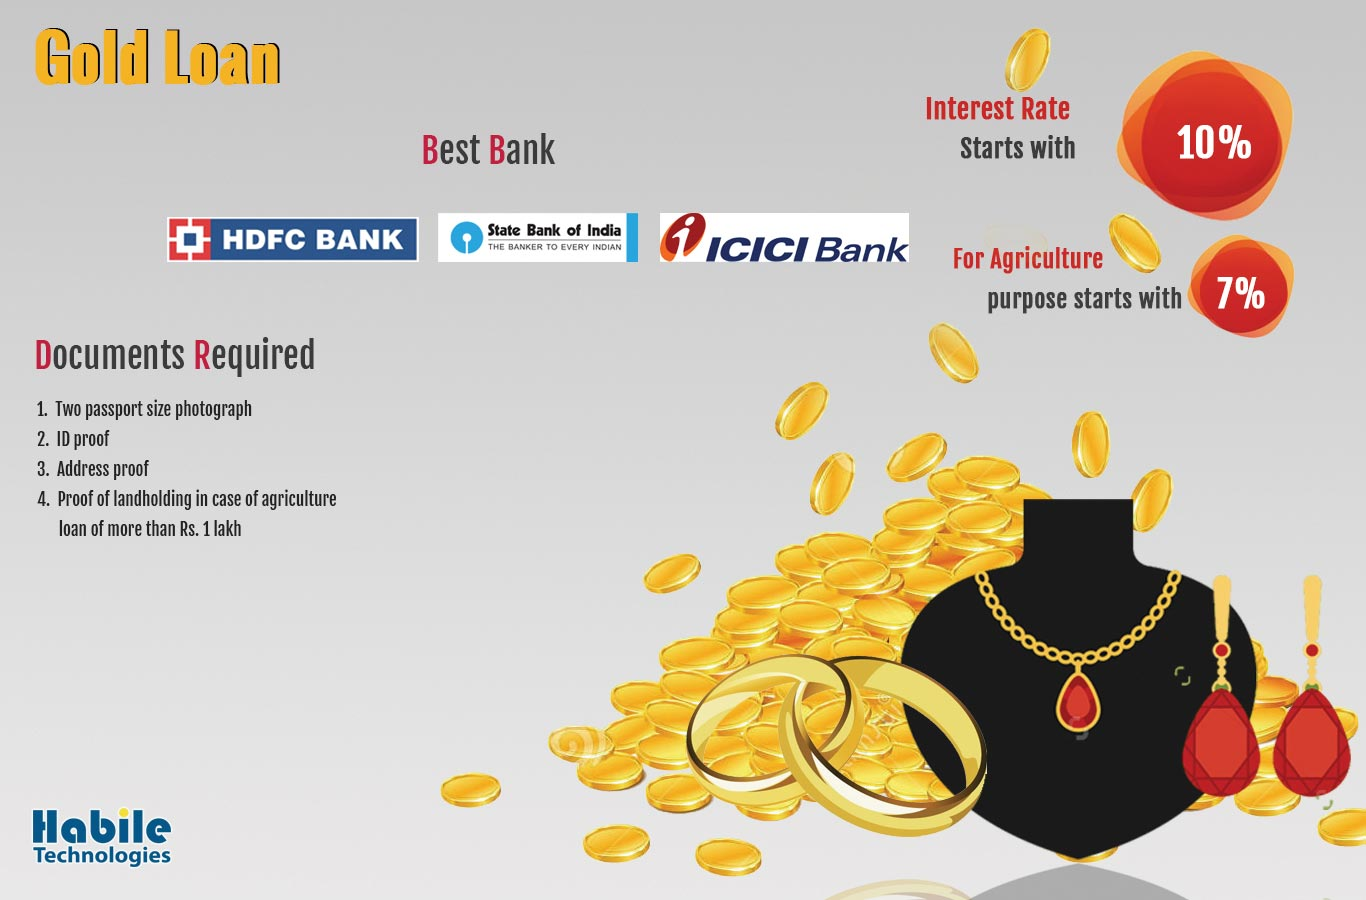 Documents required for Gold Loan